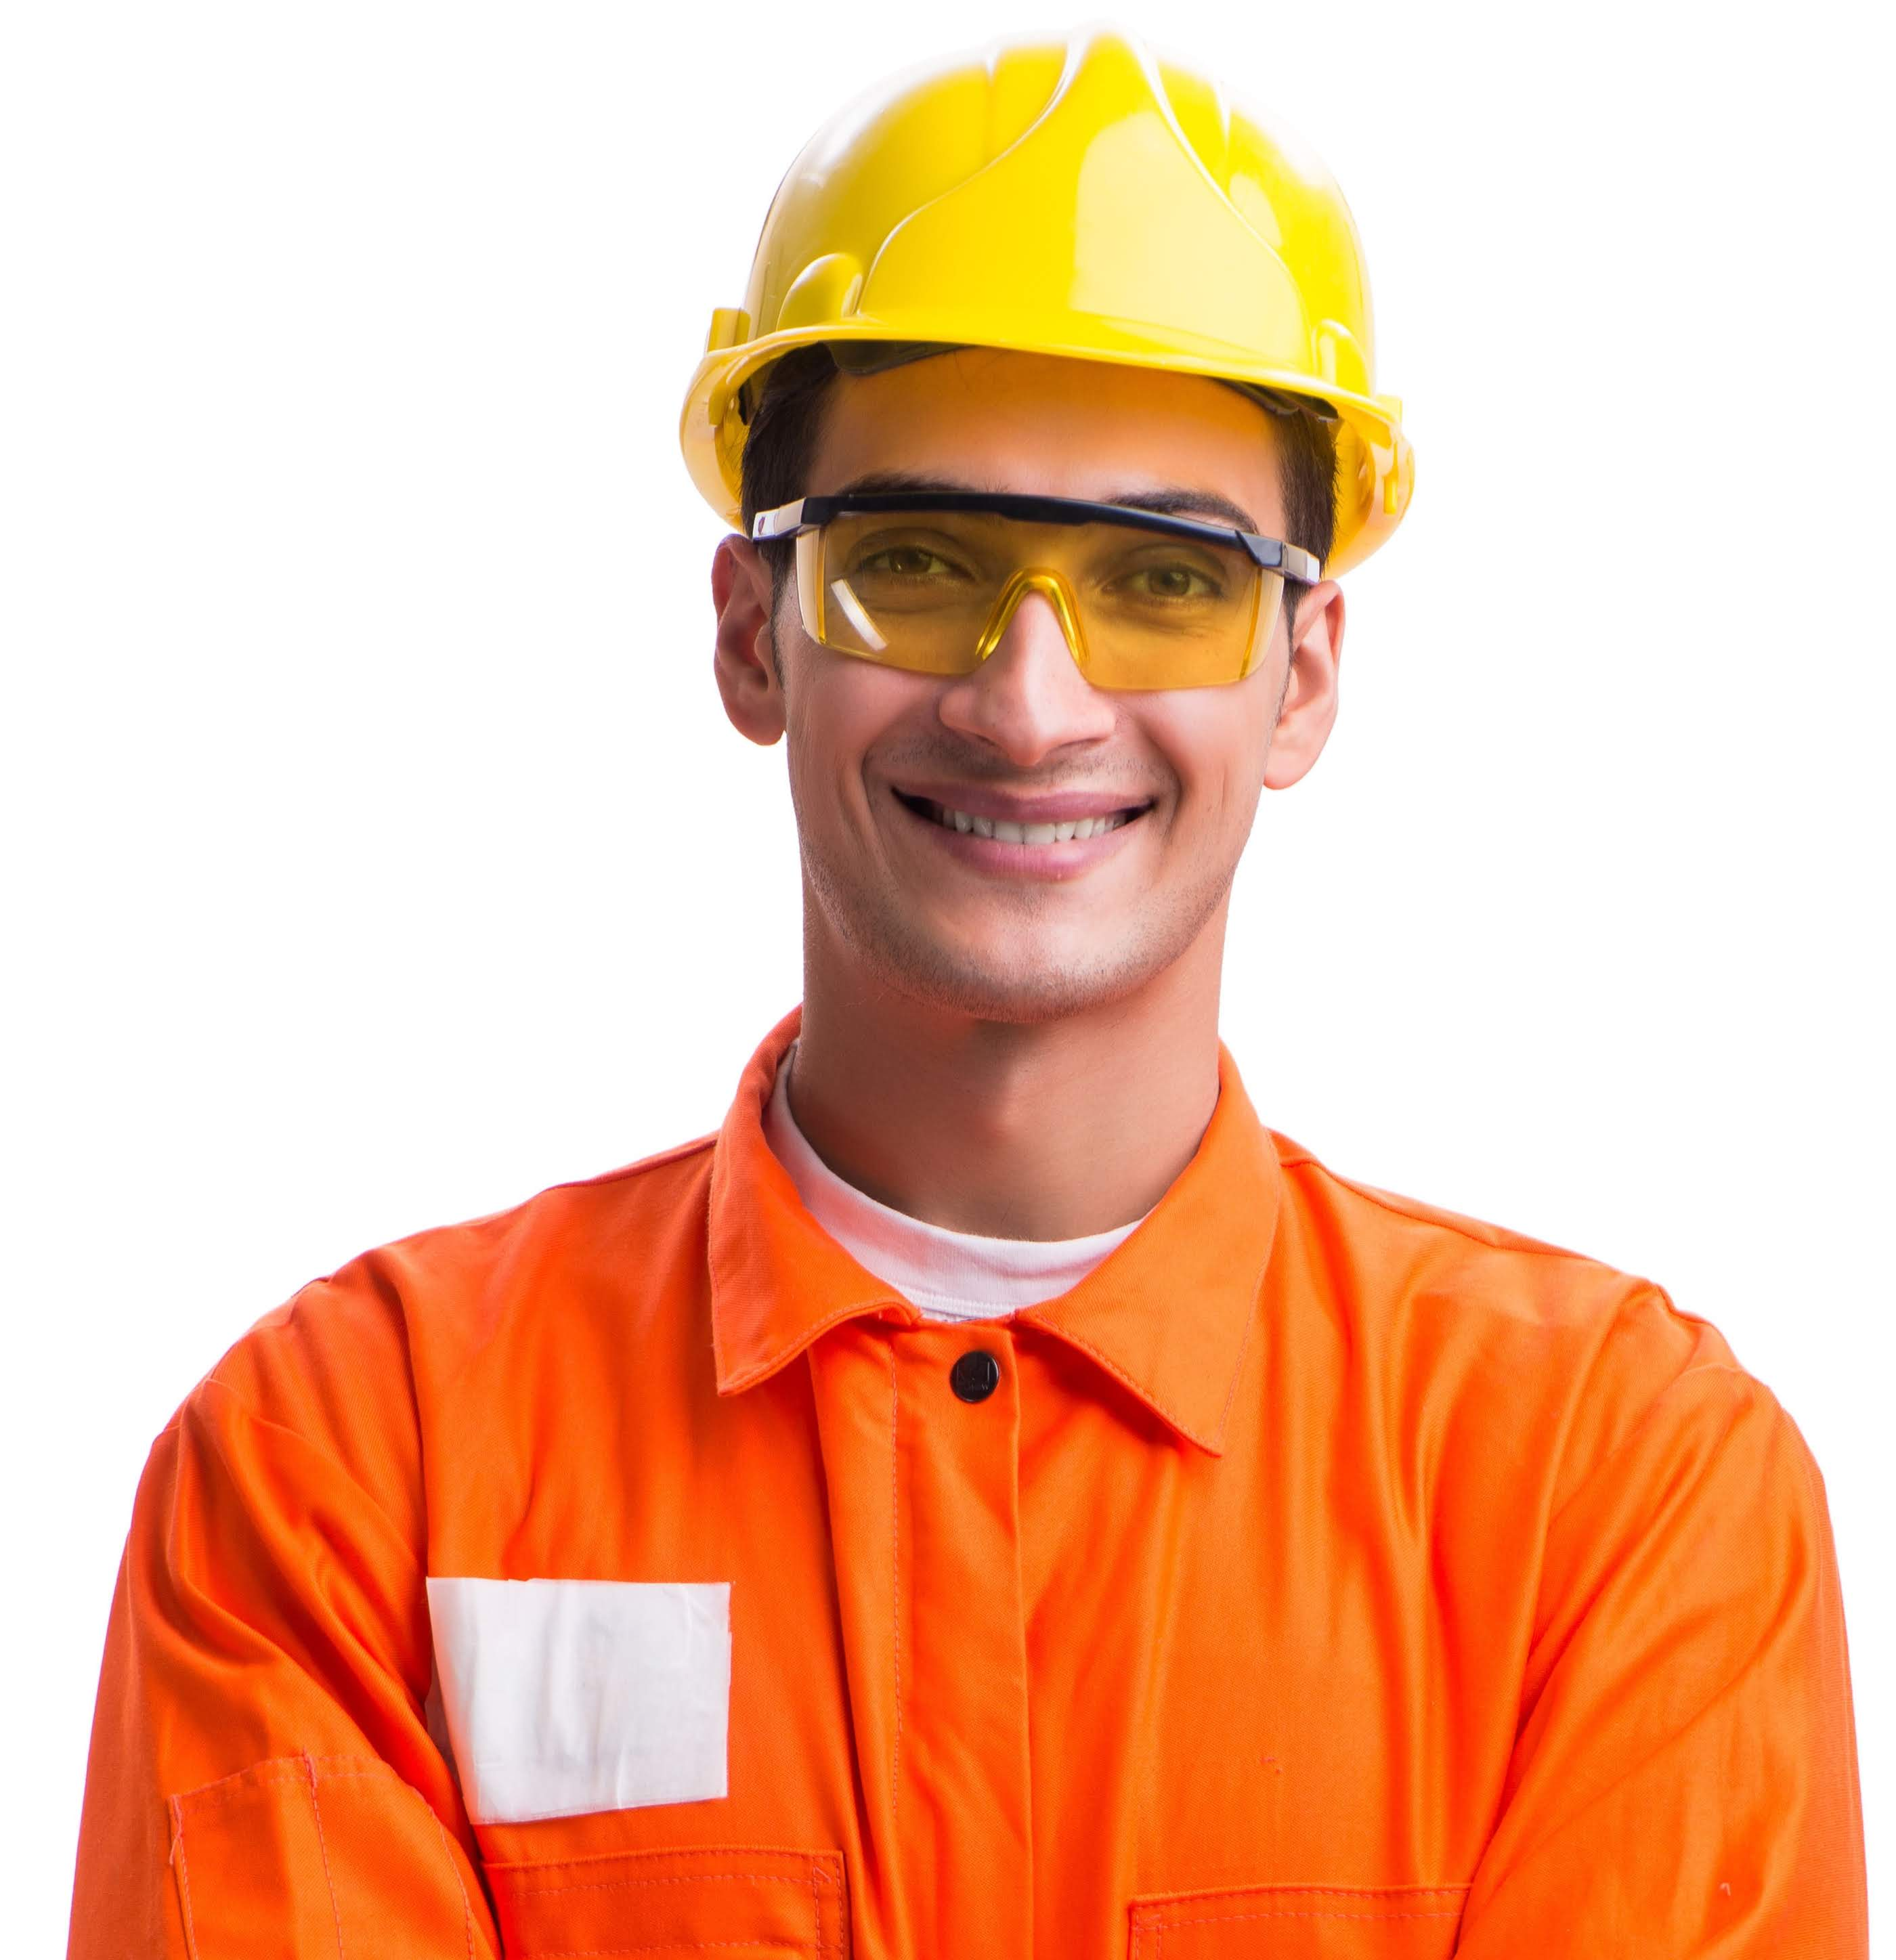 The Top 10 Construction Safety Glasses